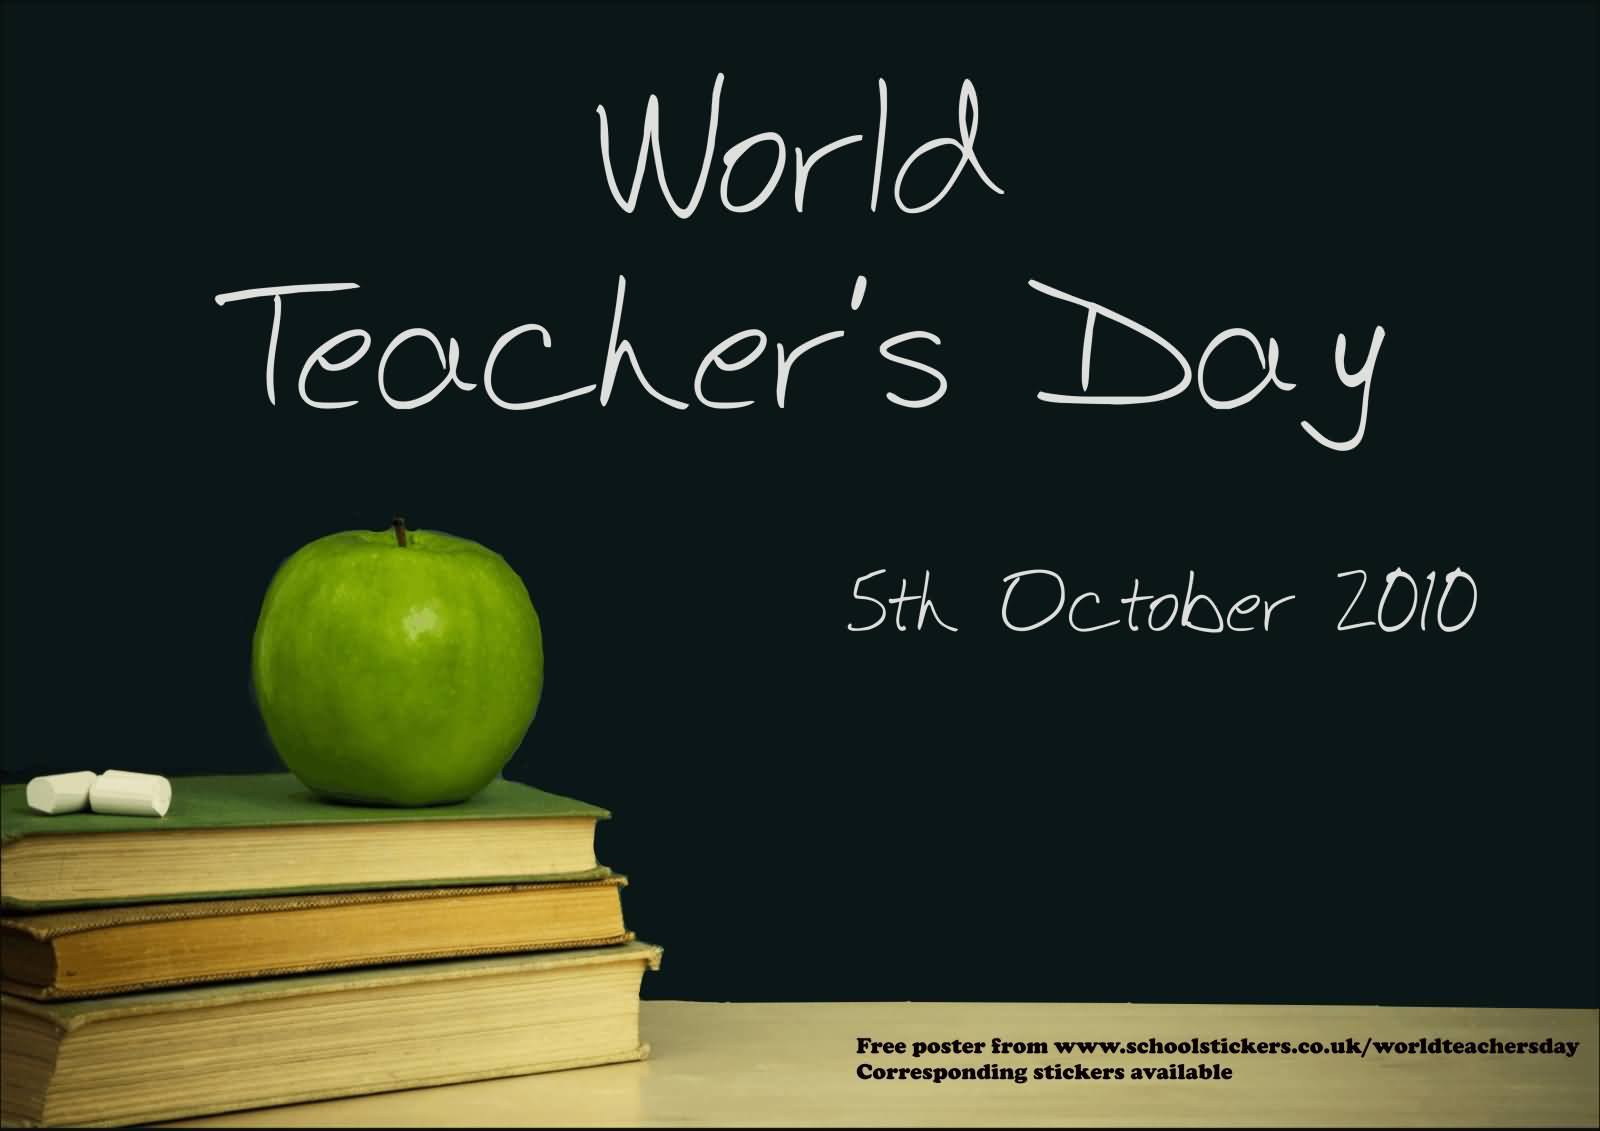 47-World Teachers Day Wishes